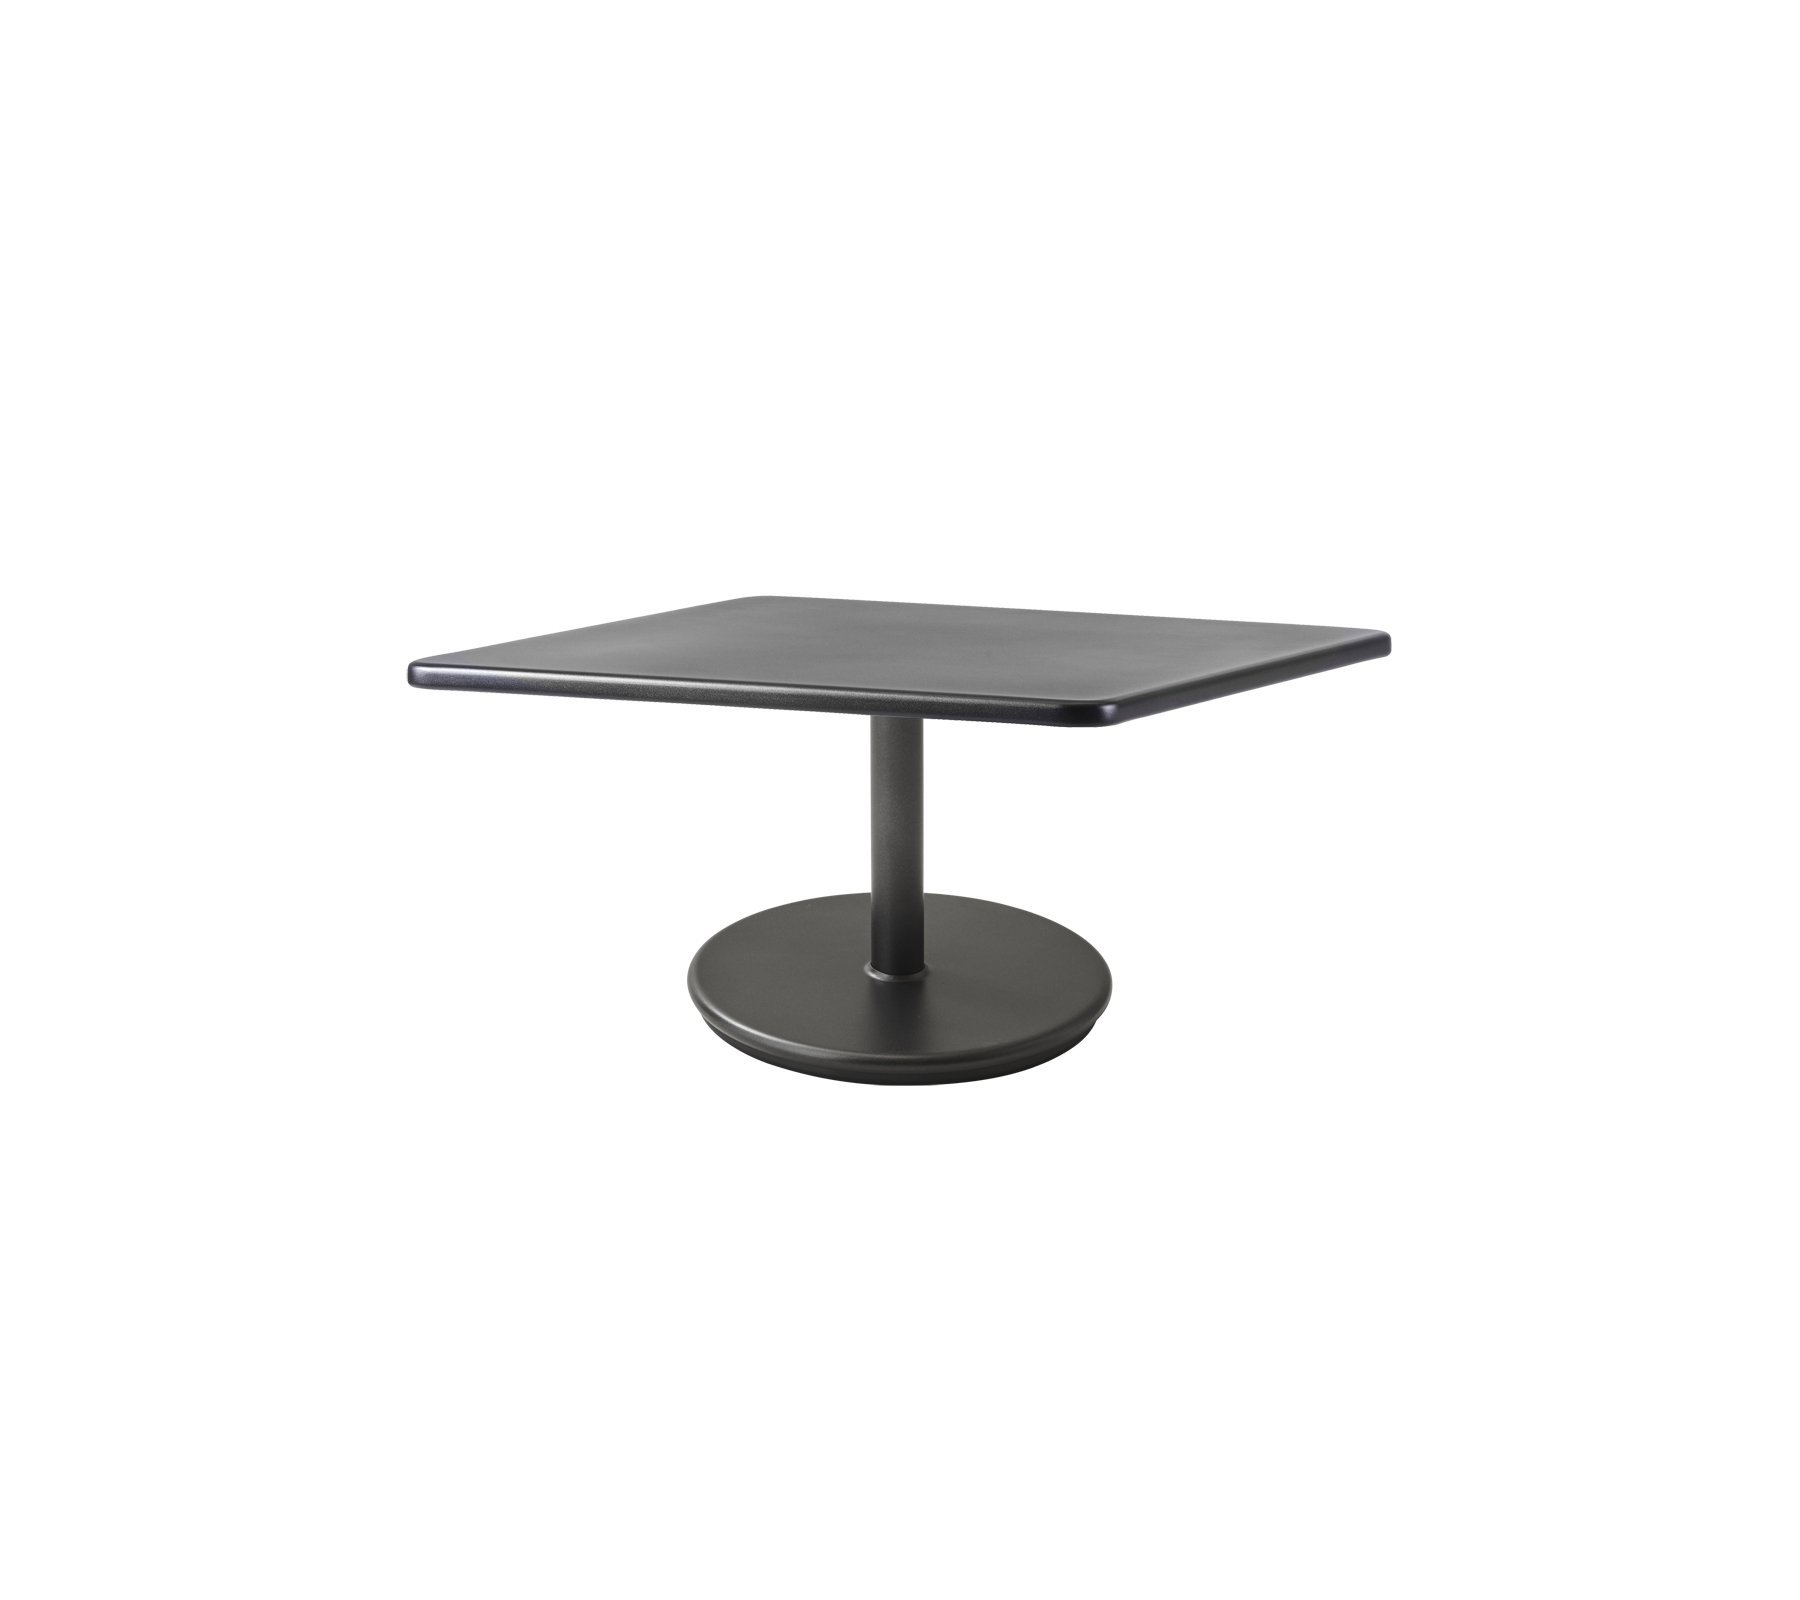 Go Coffee Table from Cane-line